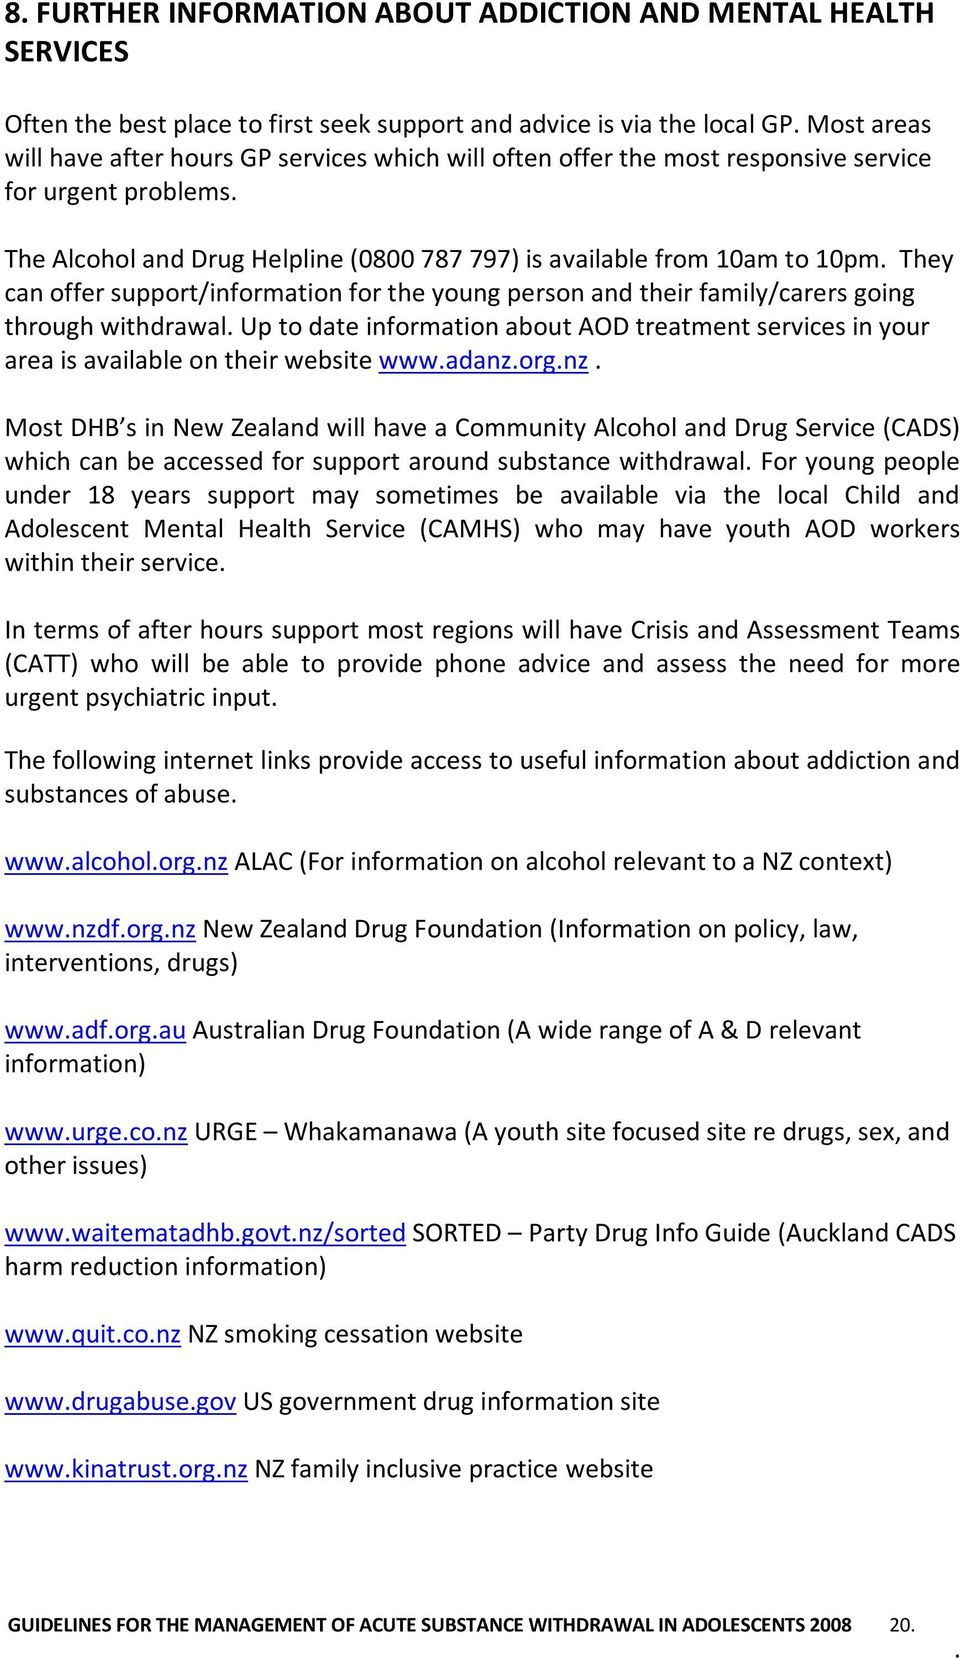 their family/carers going through withdrawal Up to date information about AOD treatment services in your area is available on their website wwwadanzorgnz Most DHB s in New Zealand will have a